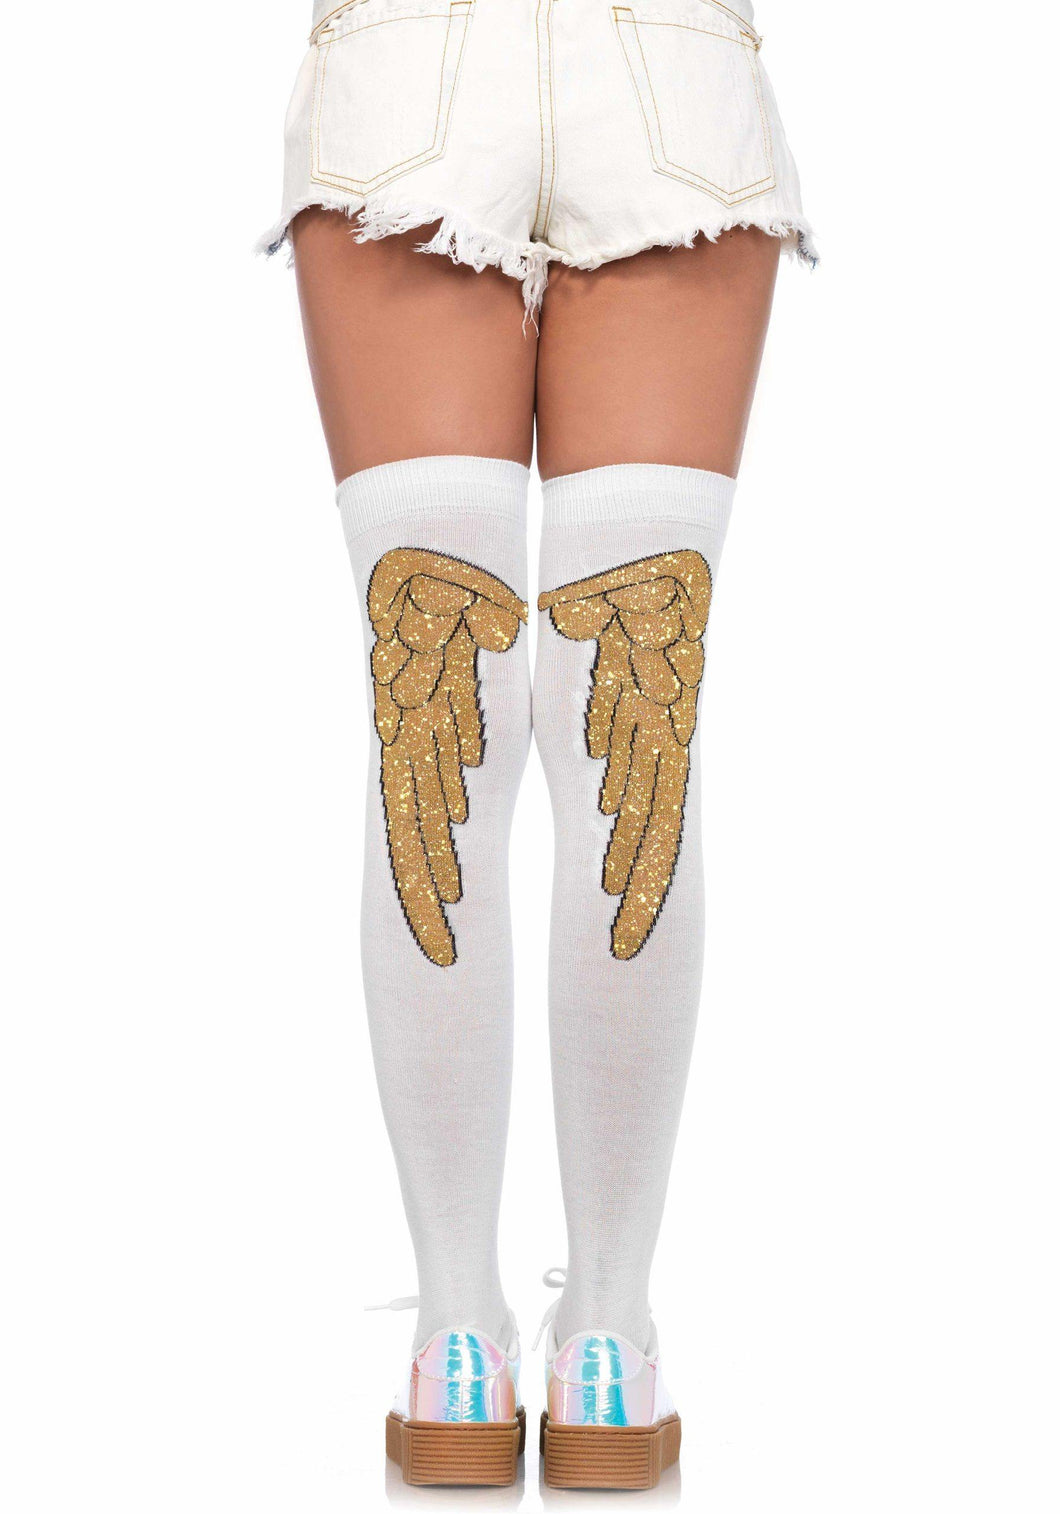 Angel Wing Over-Knee Socks - Amore Lingerie